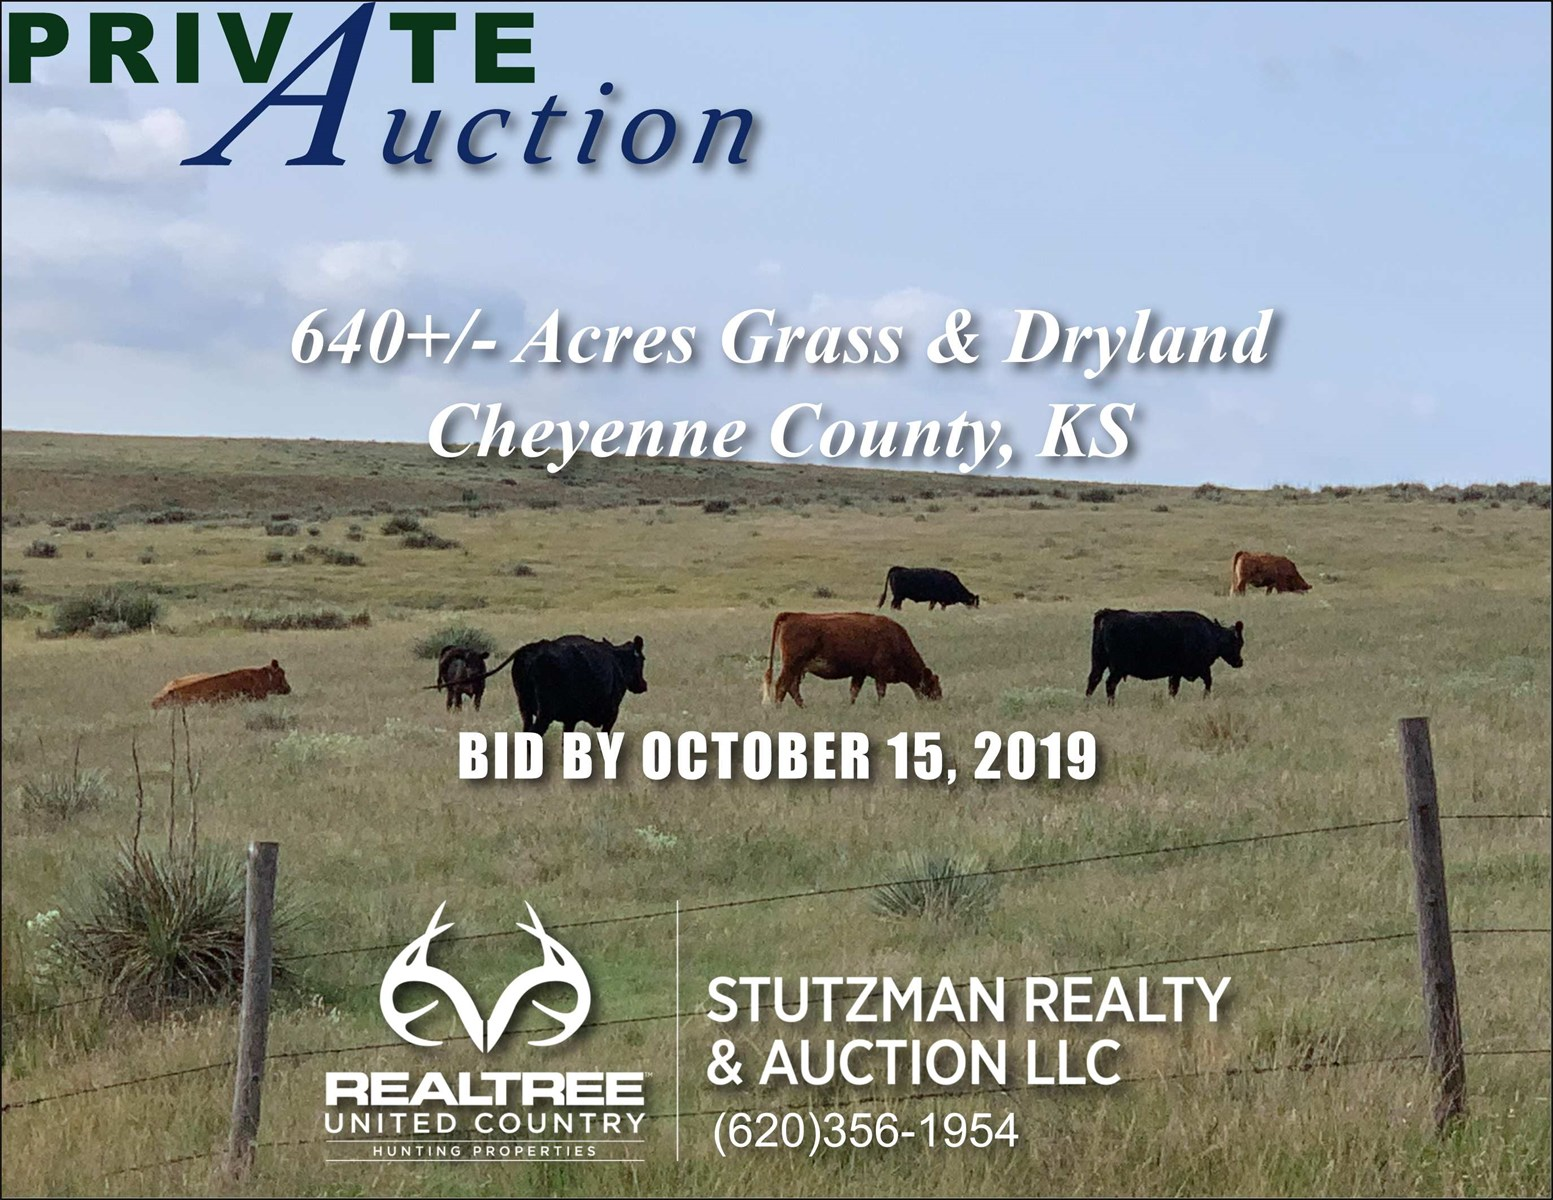 CHEYENNE COUNTY KS 640+/-AC HUNT/RANCH/FARM PRIVATE AUCTION